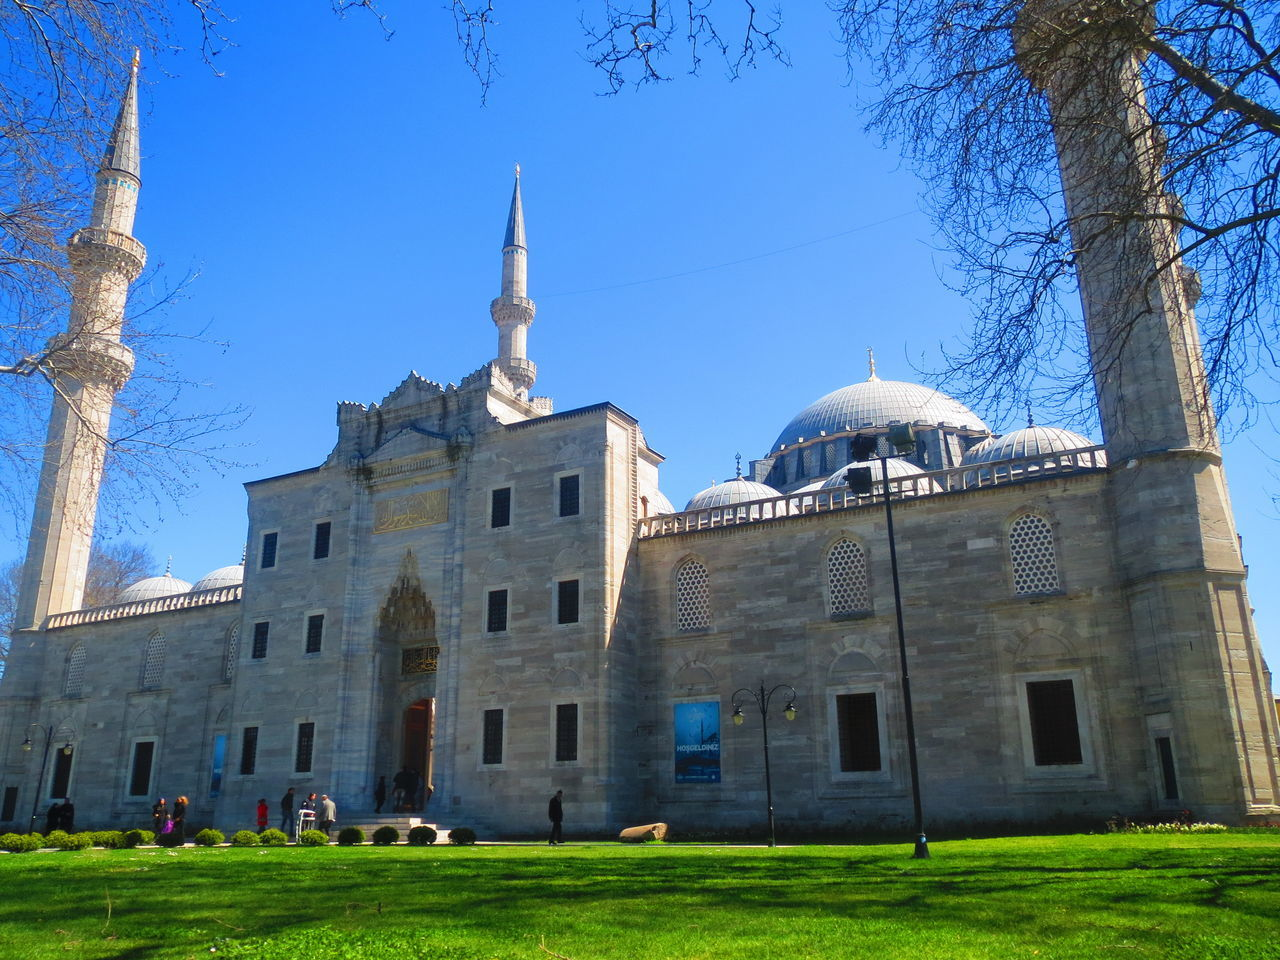 architecture, building exterior, built structure, religion, place of worship, spirituality, day, low angle view, blue, outdoors, dome, travel destinations, clear sky, history, sunlight, bare tree, tree, grass, sky, no people, city